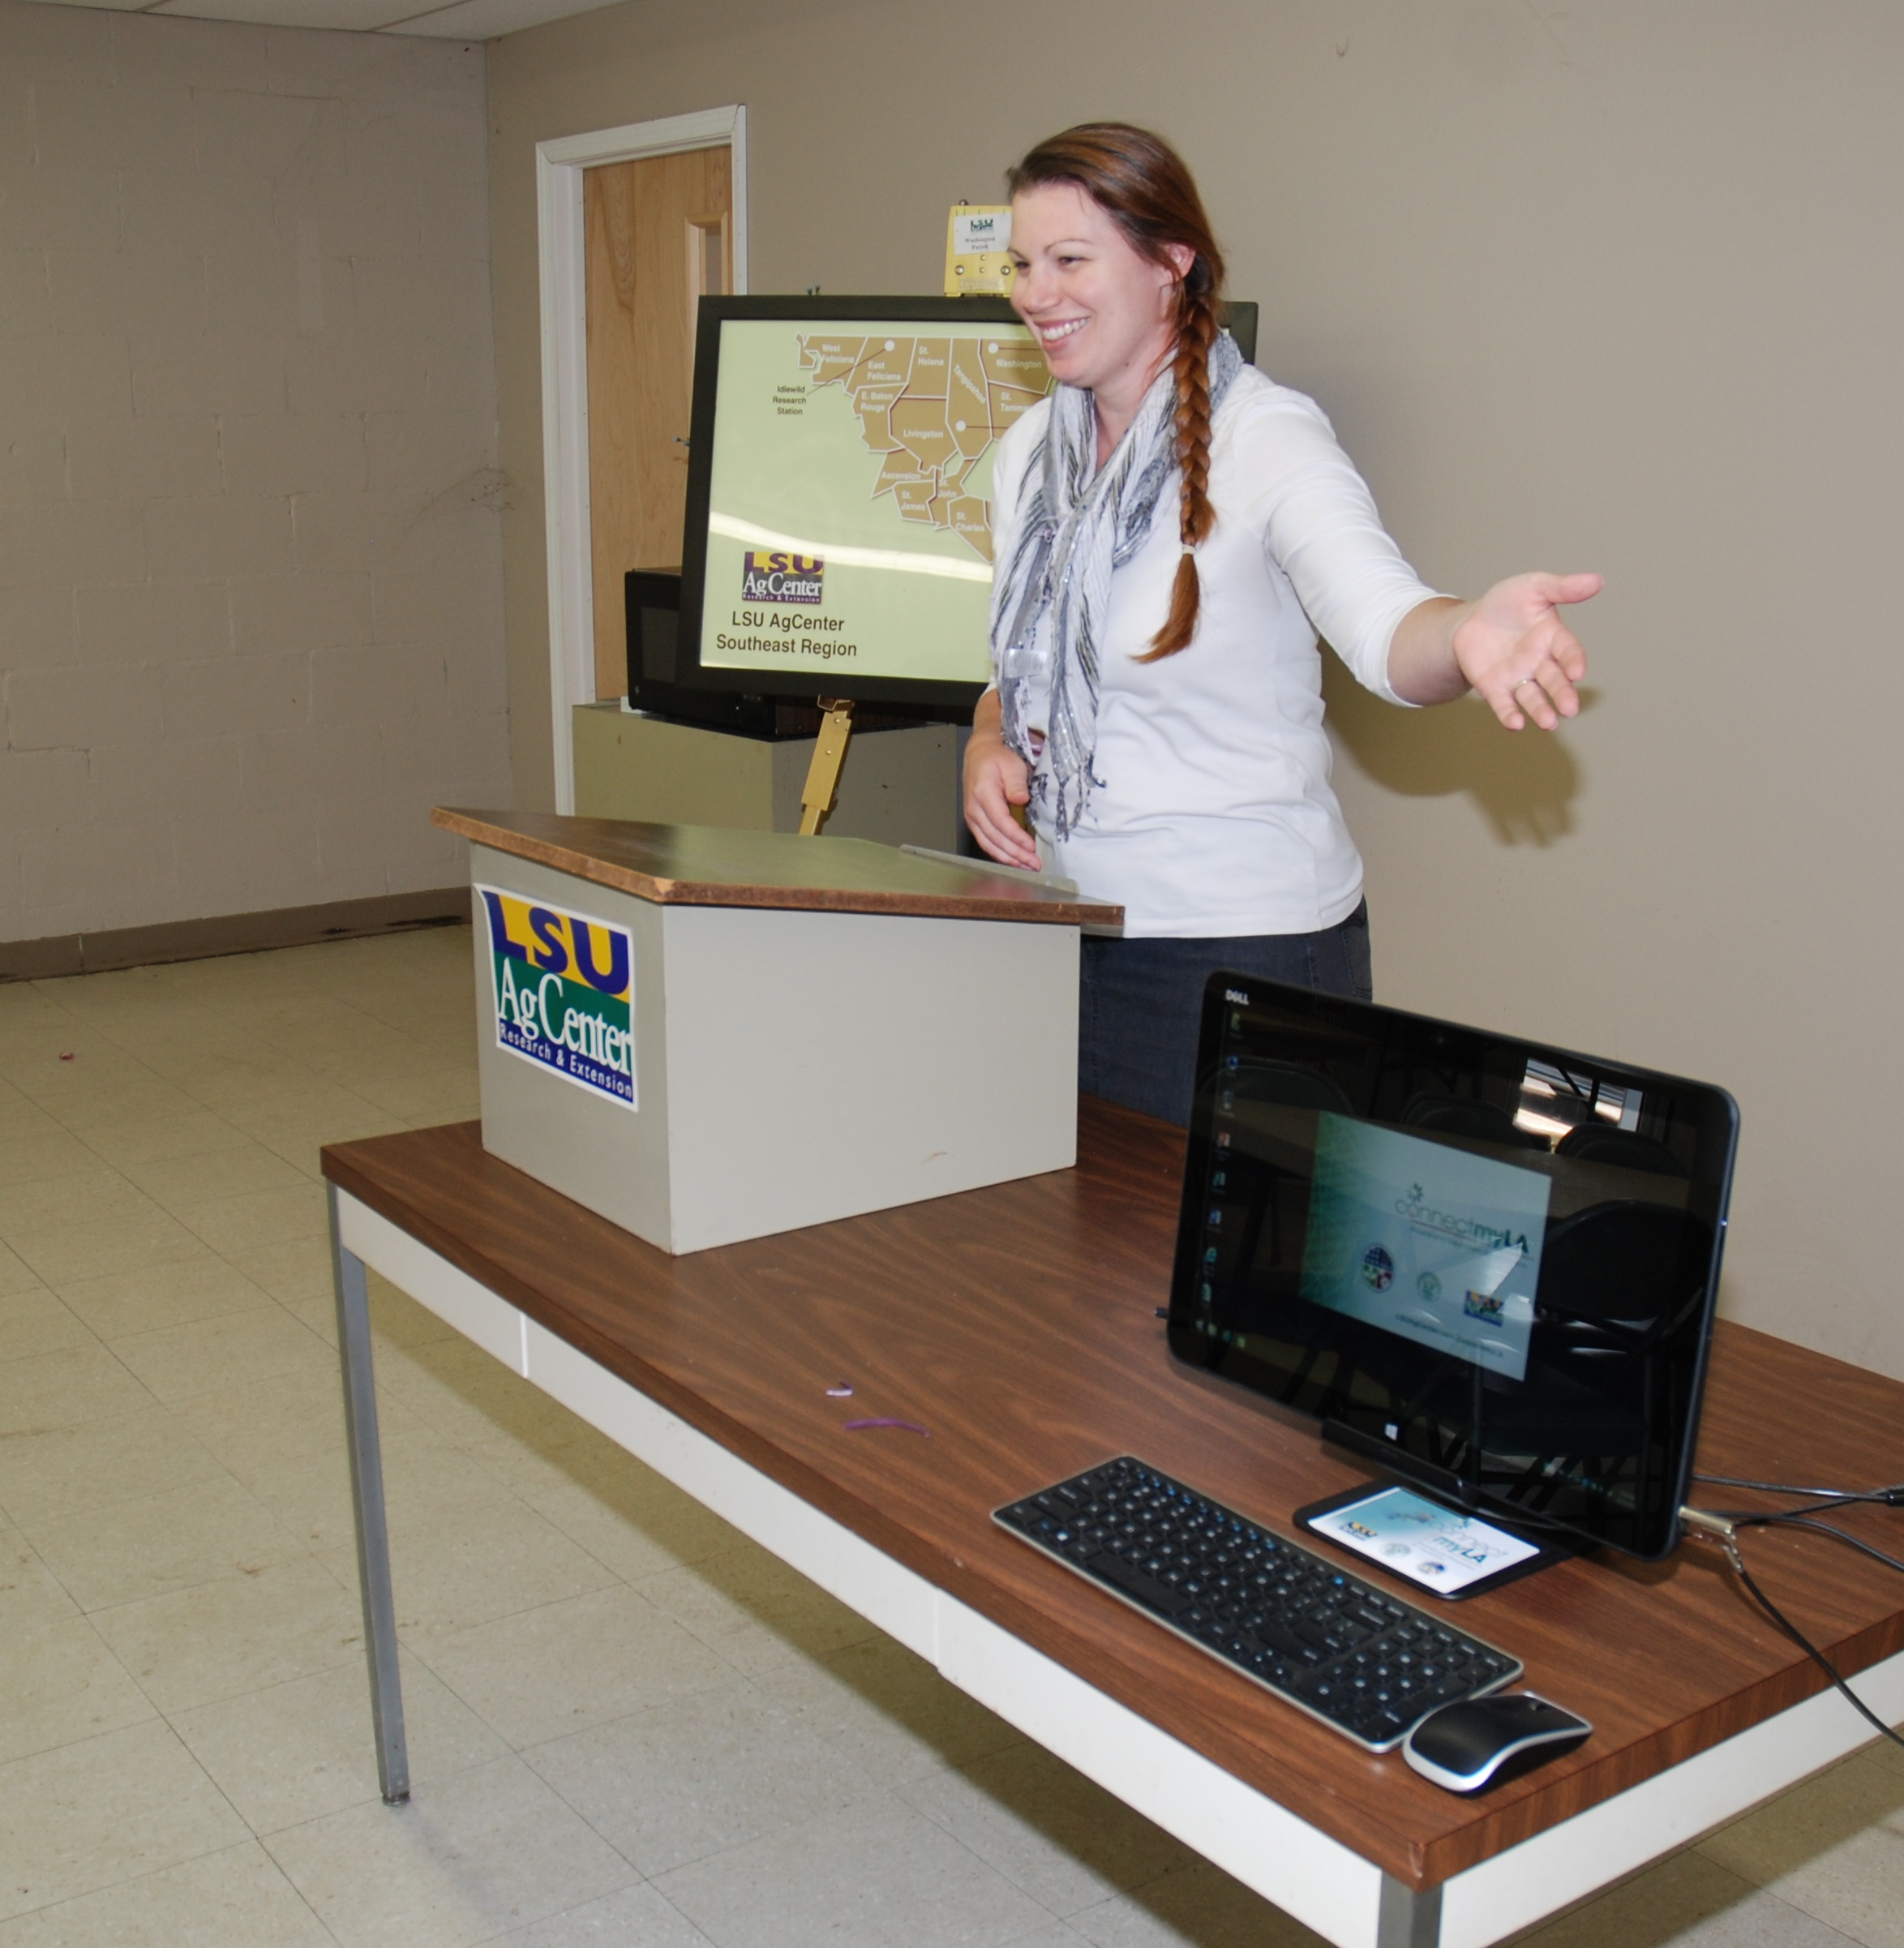 AgCenter brings technology to local residents